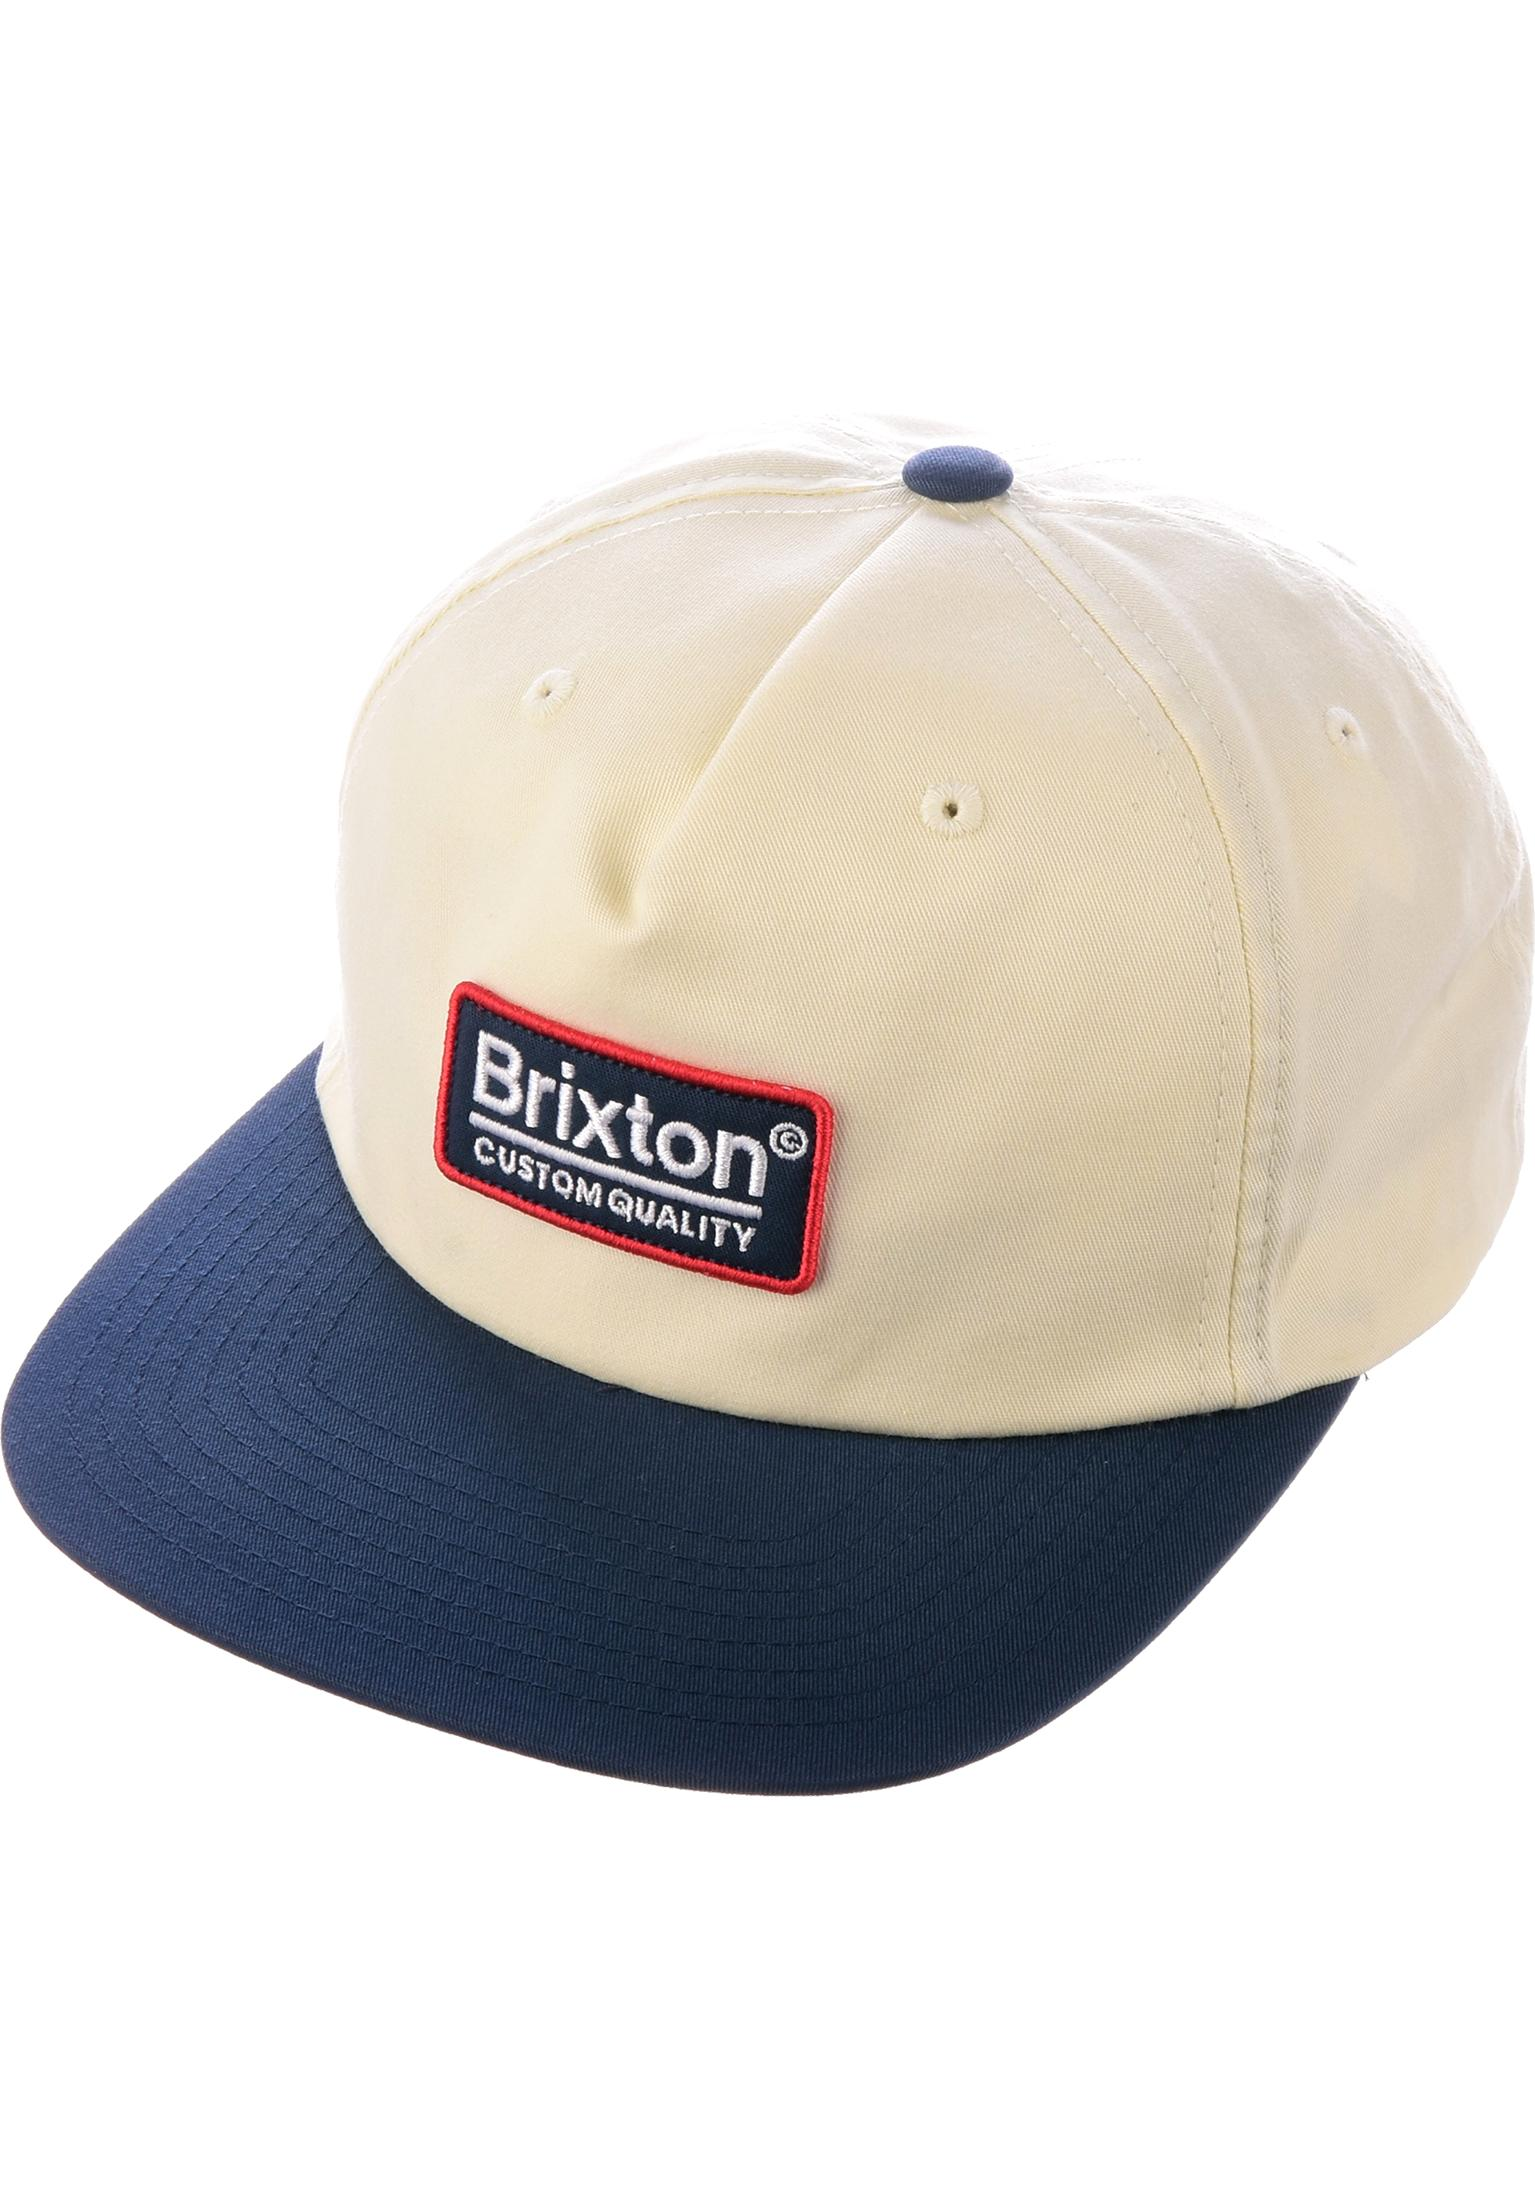 ad5319e4b95b6 Palmer Brixton Caps in offwhite-navy for Men